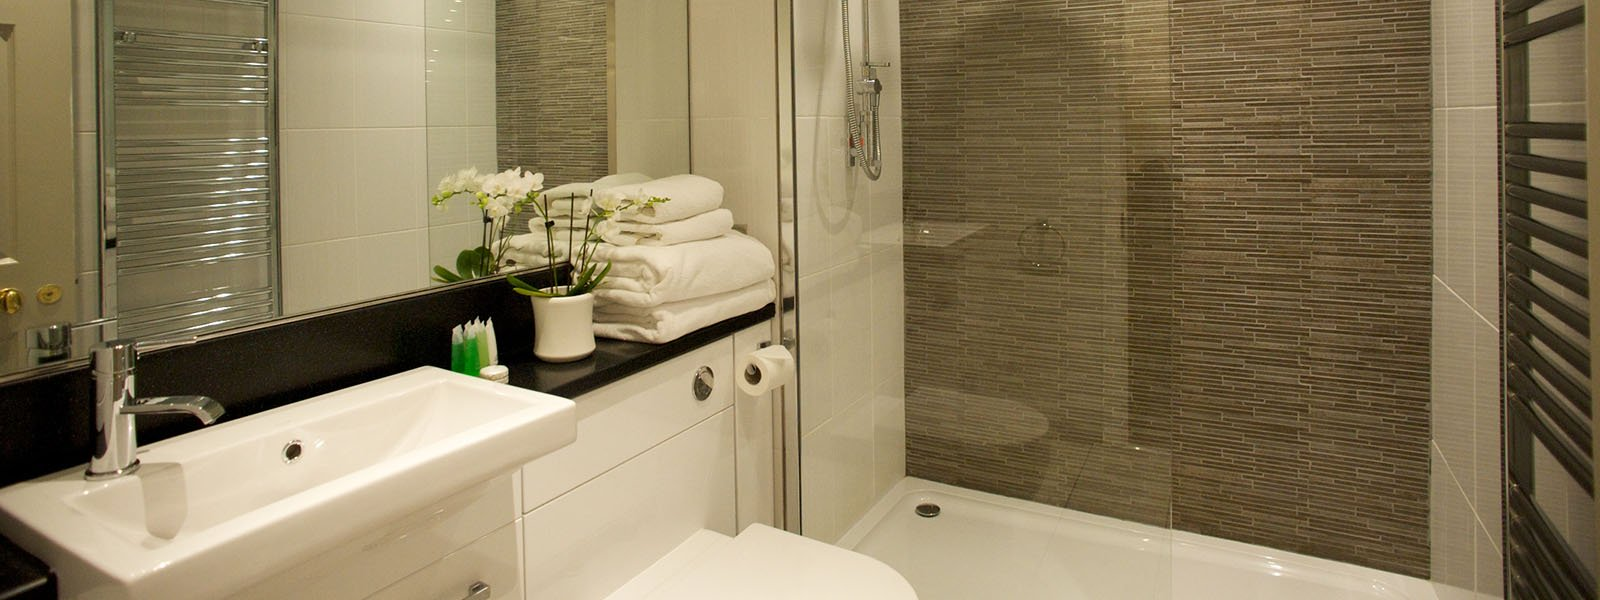 Ross Priory en-suite bathroom